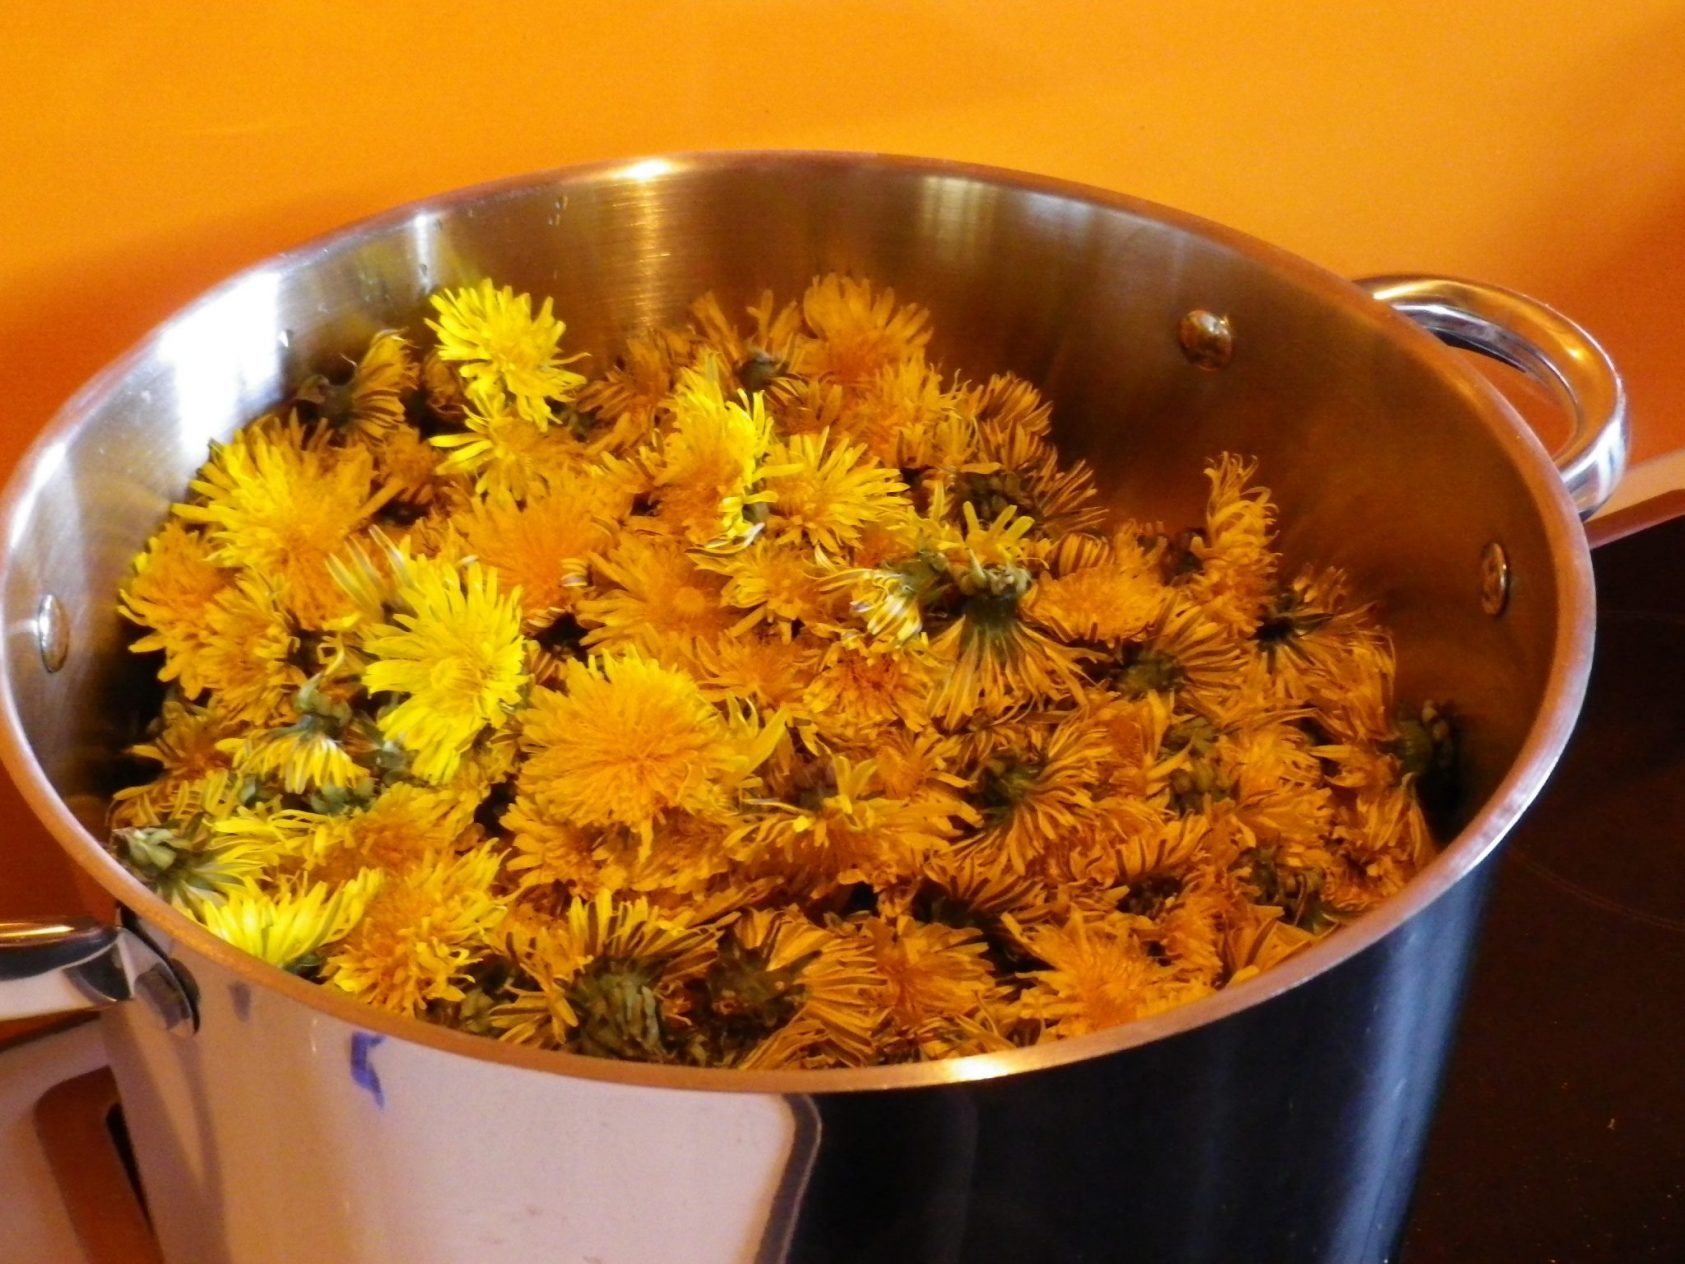 <!--:nl-->paardenbloemen in pot<!--:--><!--:fr-->paardenbloemen in pot<!--:-->